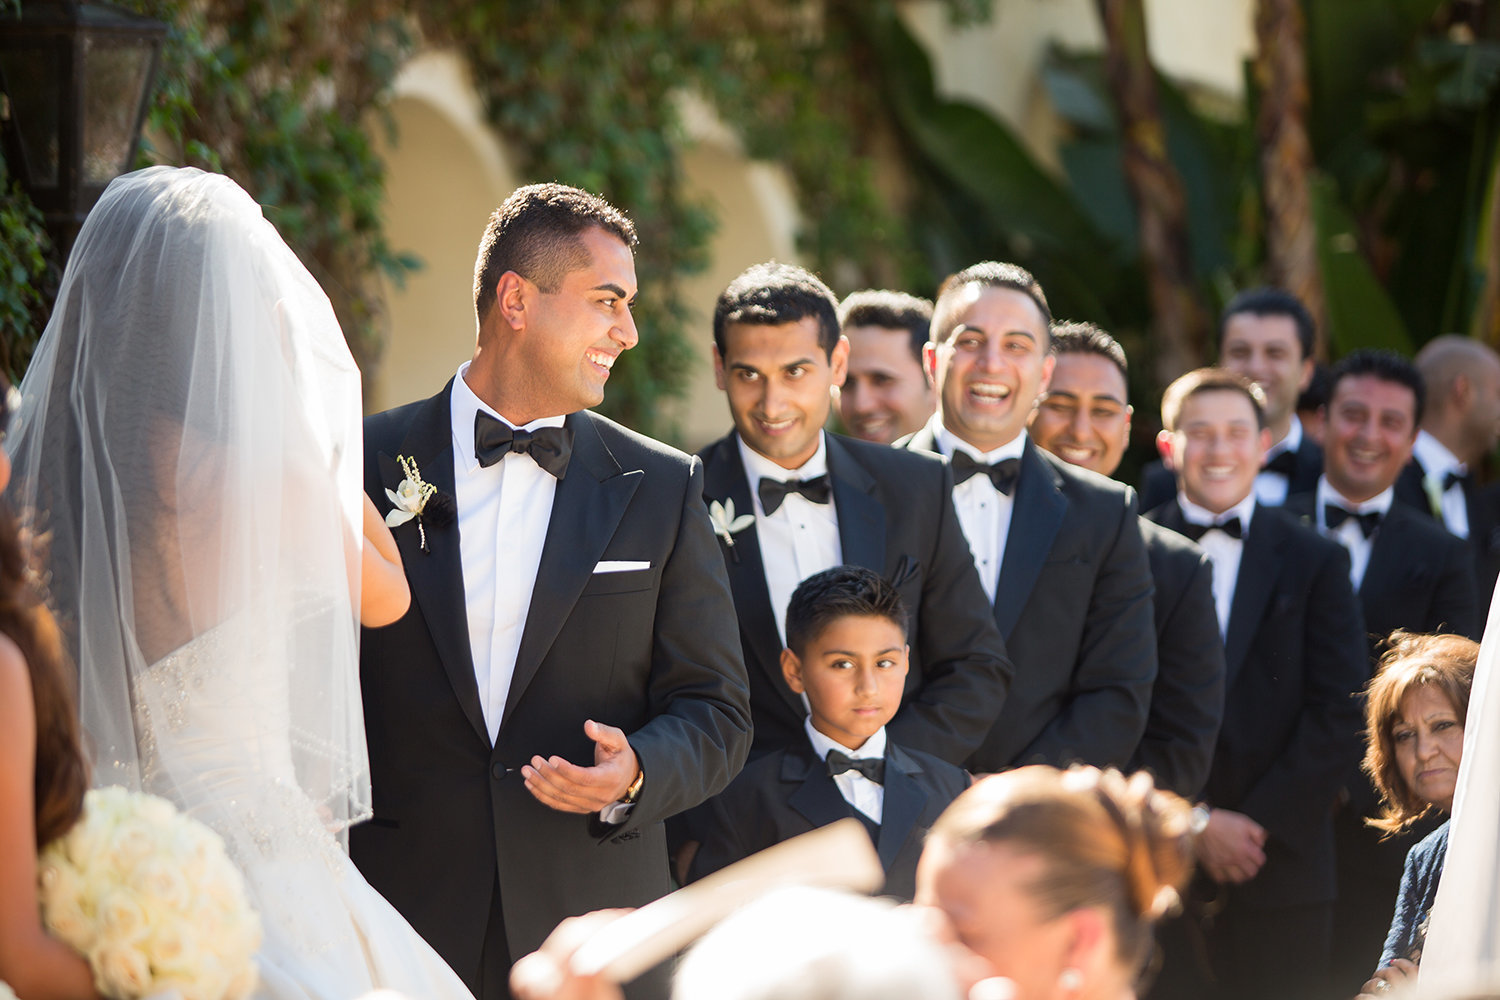 The candid moments are some of our favorites from wedding ceremonies